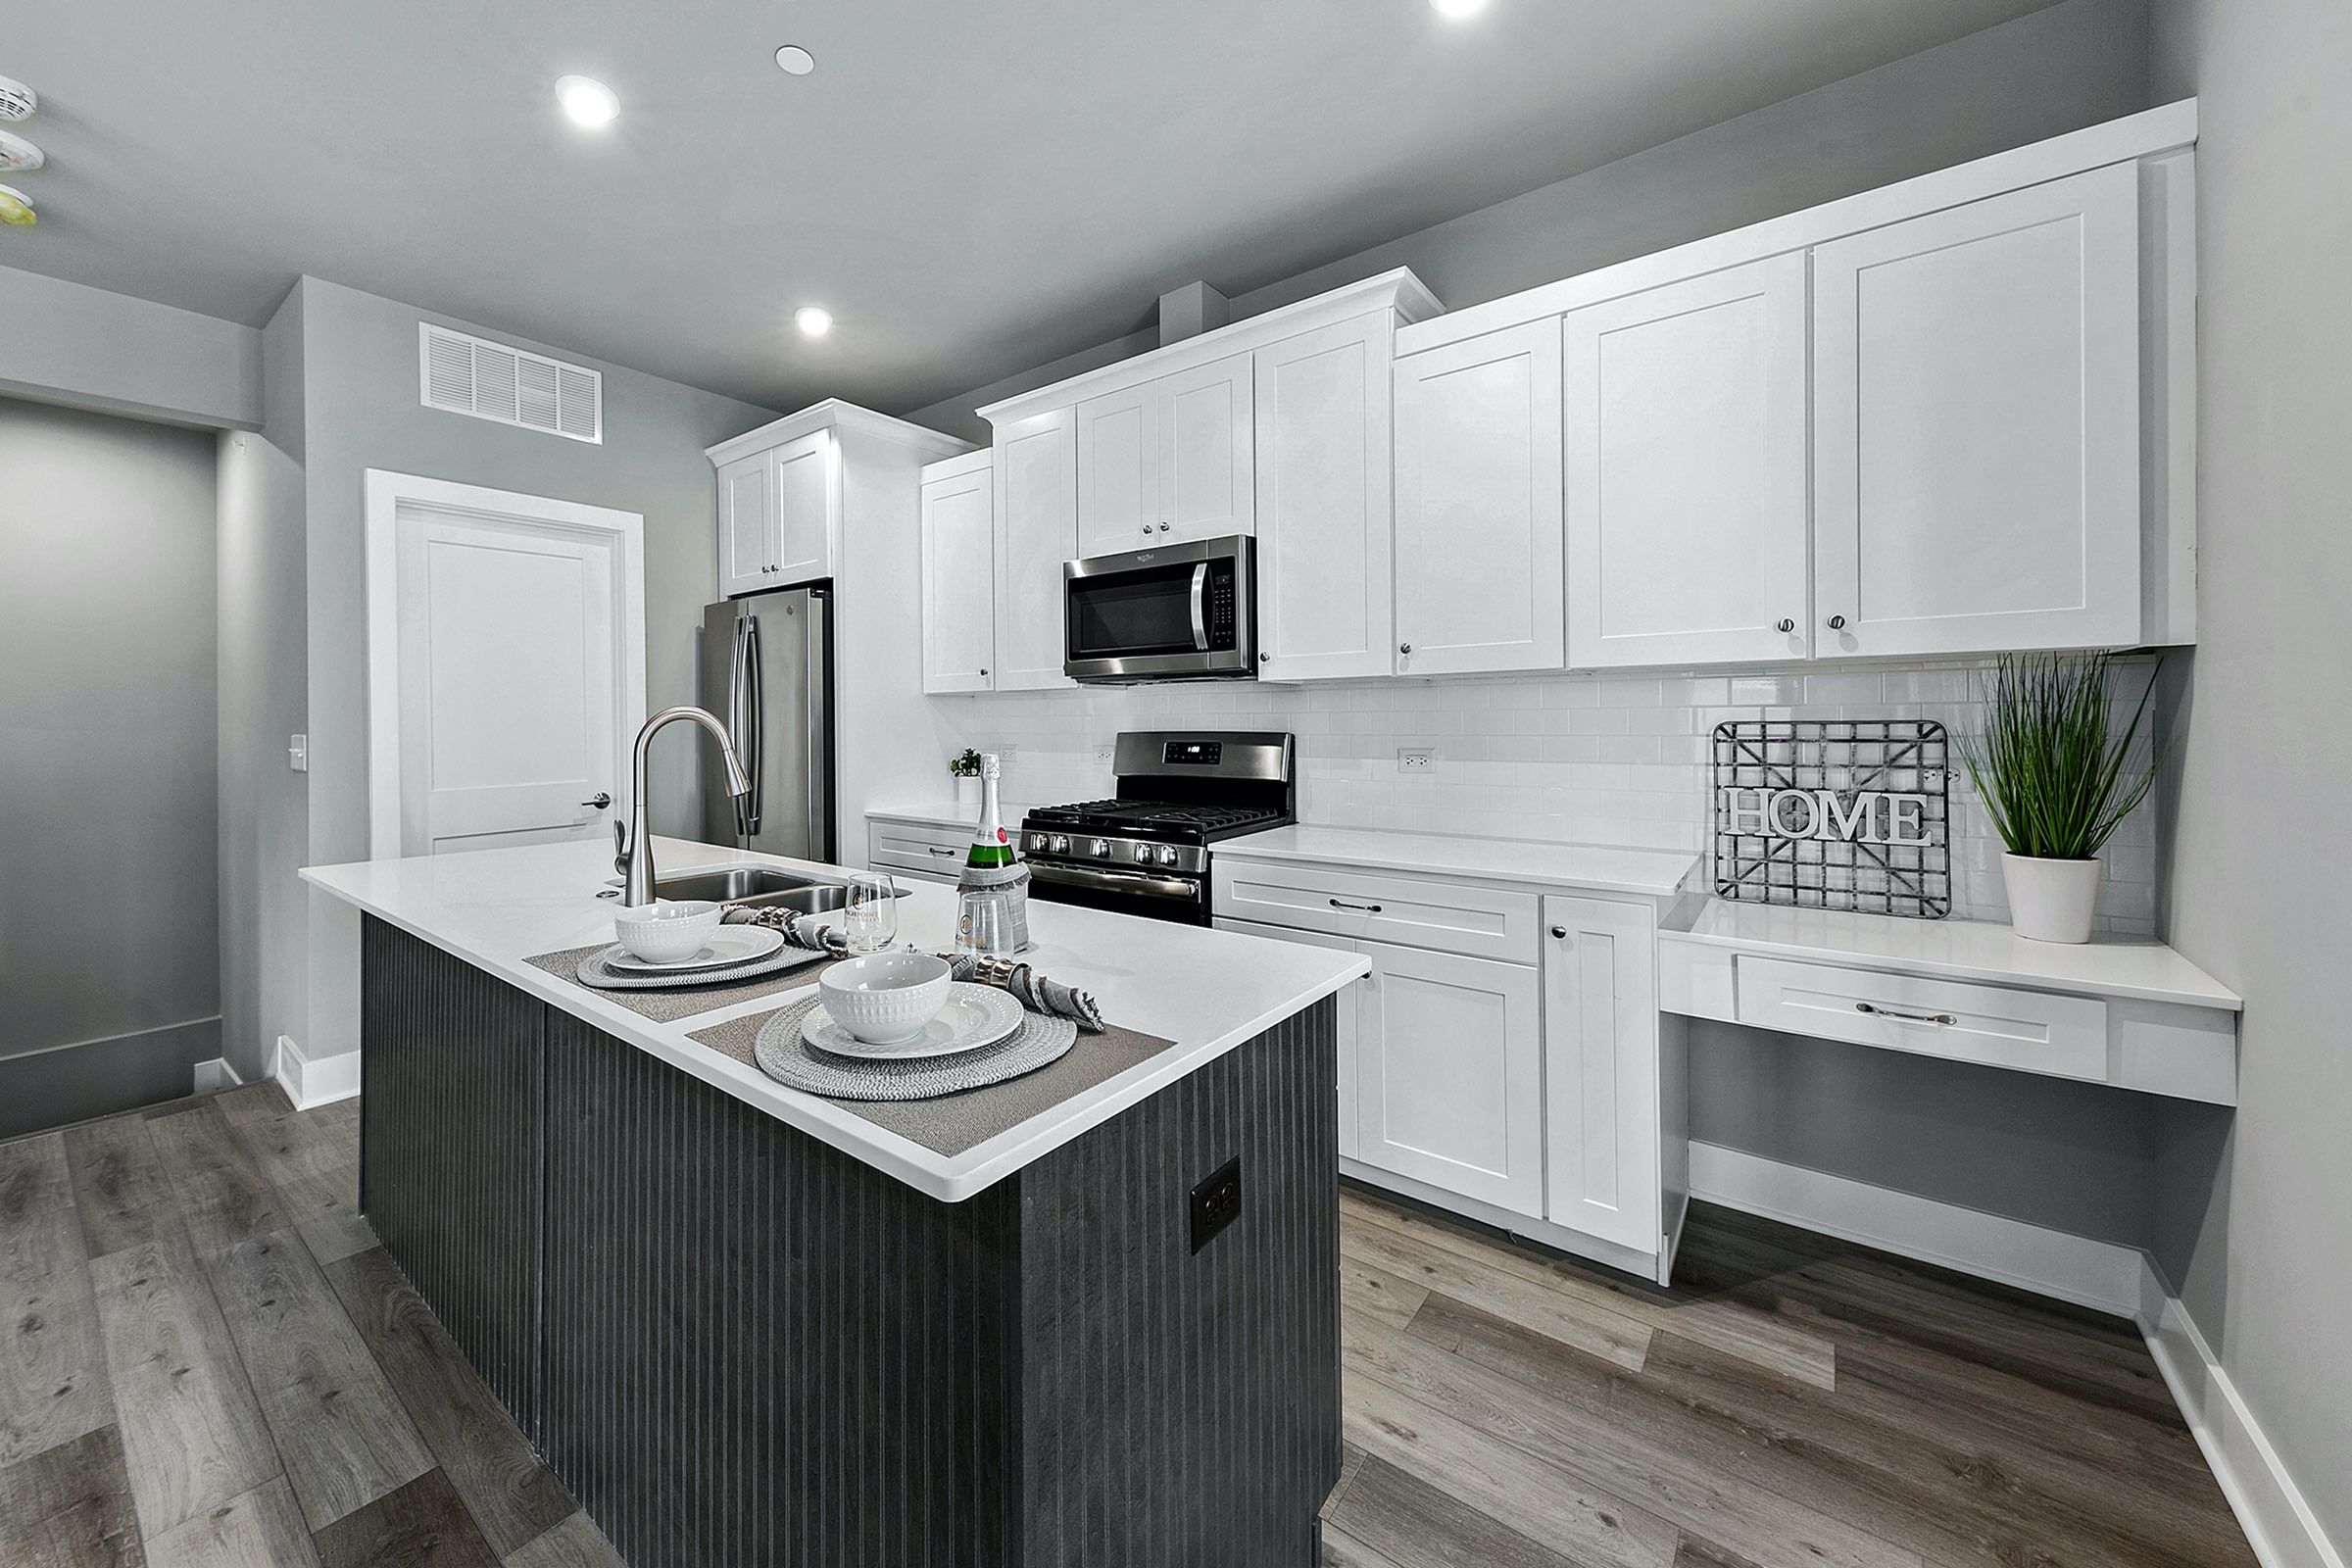 Town Square Townhome Apartment Kitchen